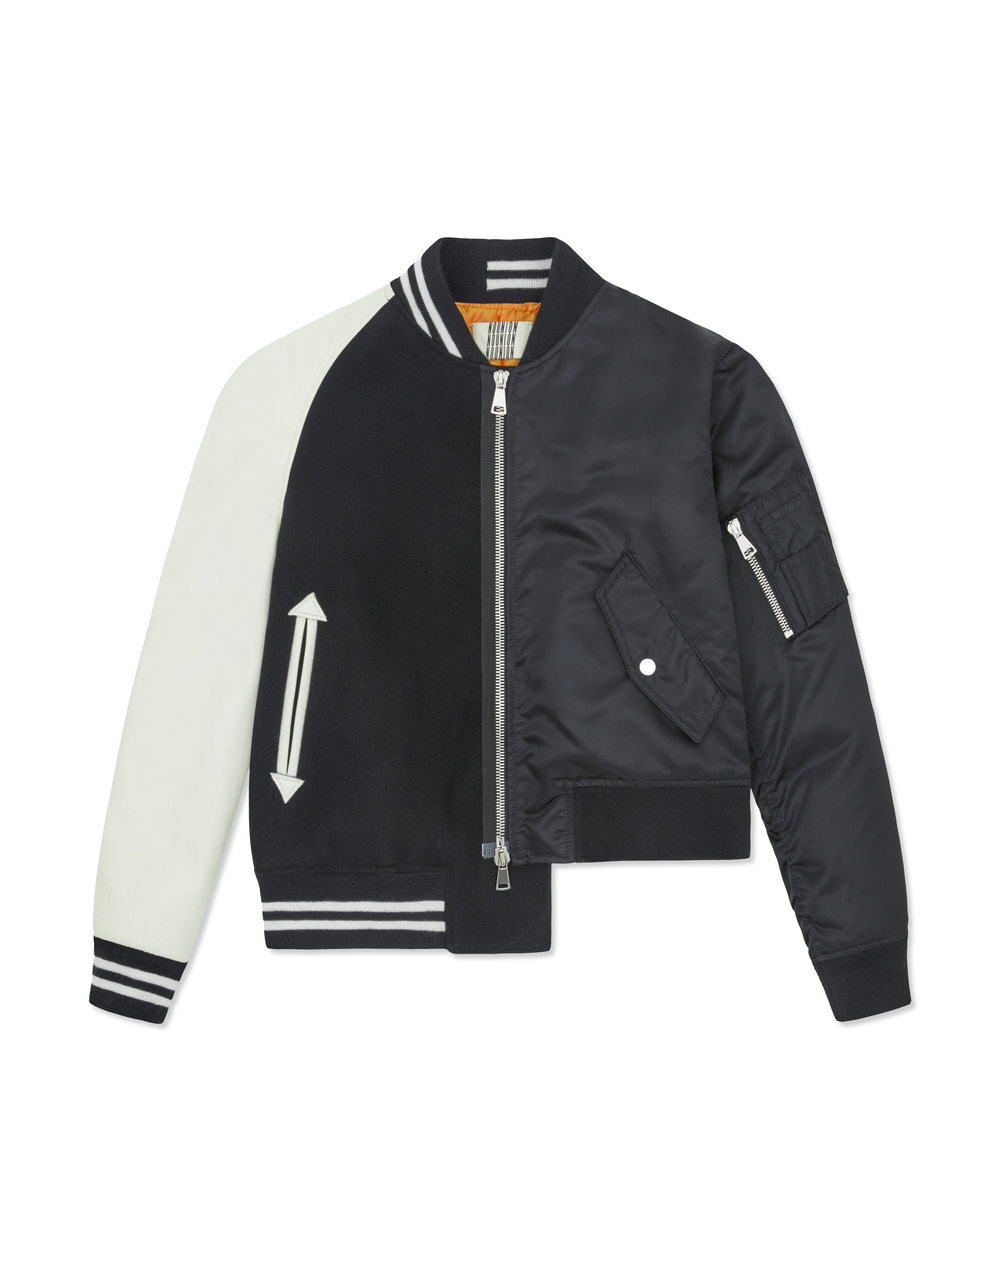 C2-O_01_Mixed Flight Jacket_01.jpg